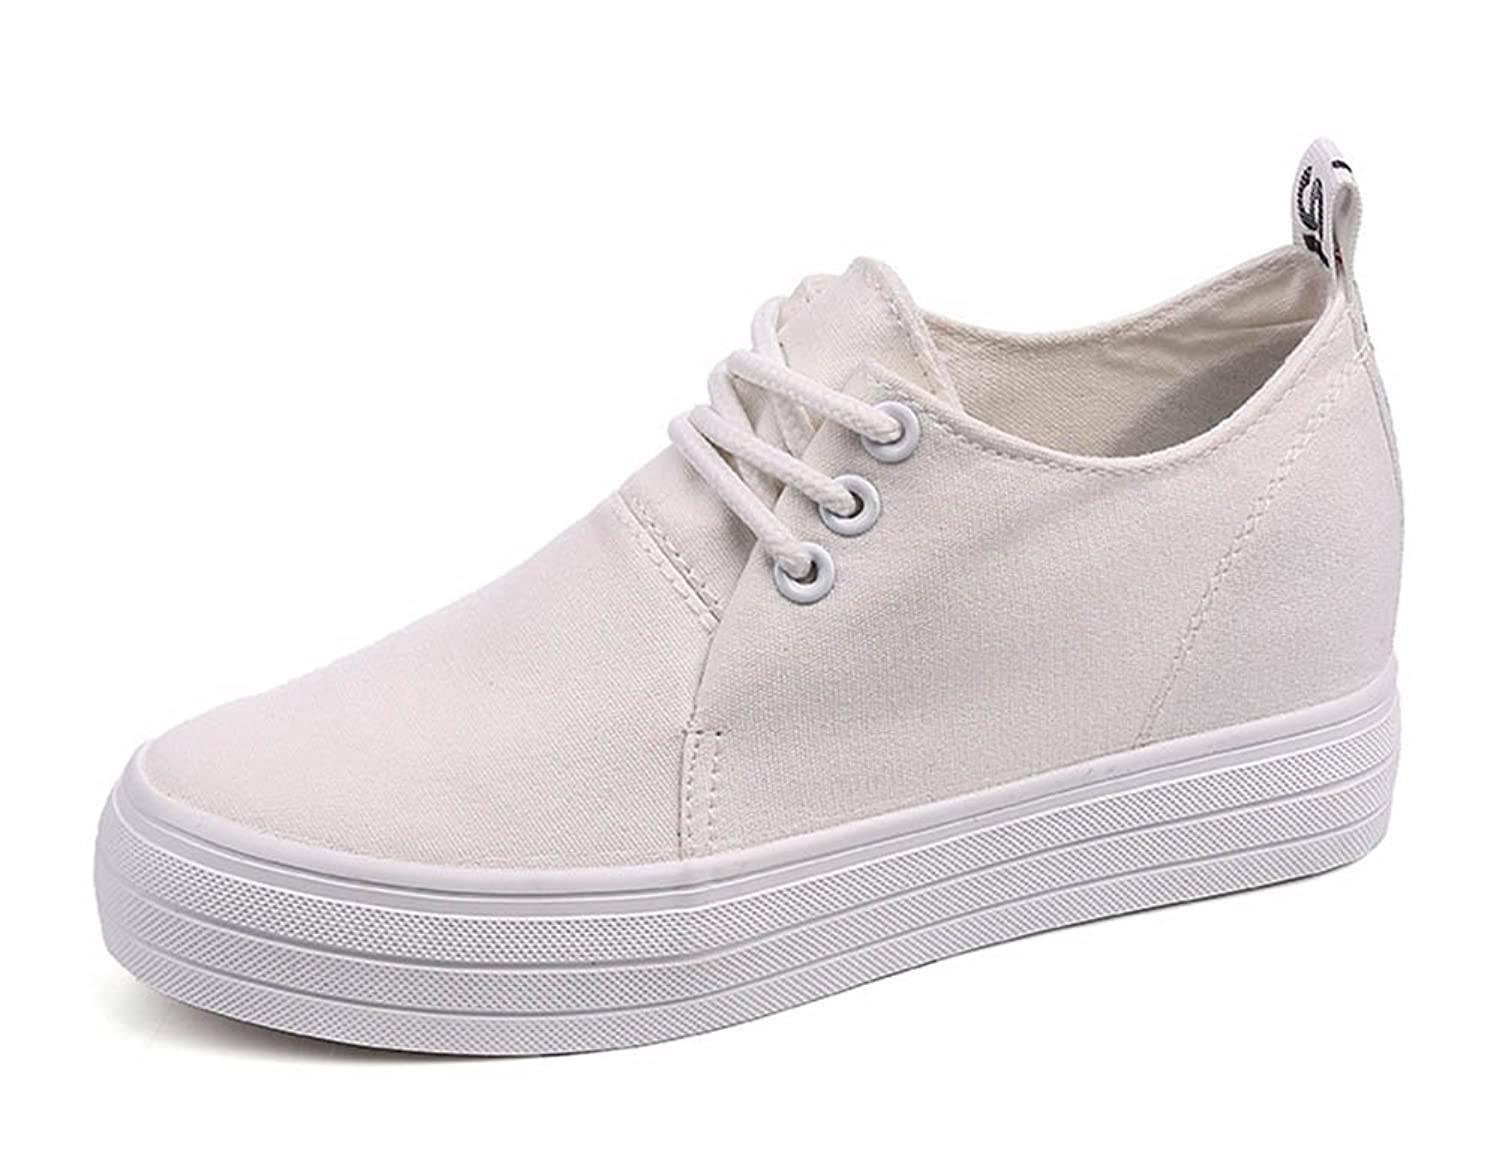 Aisun Women's Casual Round Toe Thick Sole Elevator Hidden Wedge Platform Lace Up Sneakers Canvas Shoes